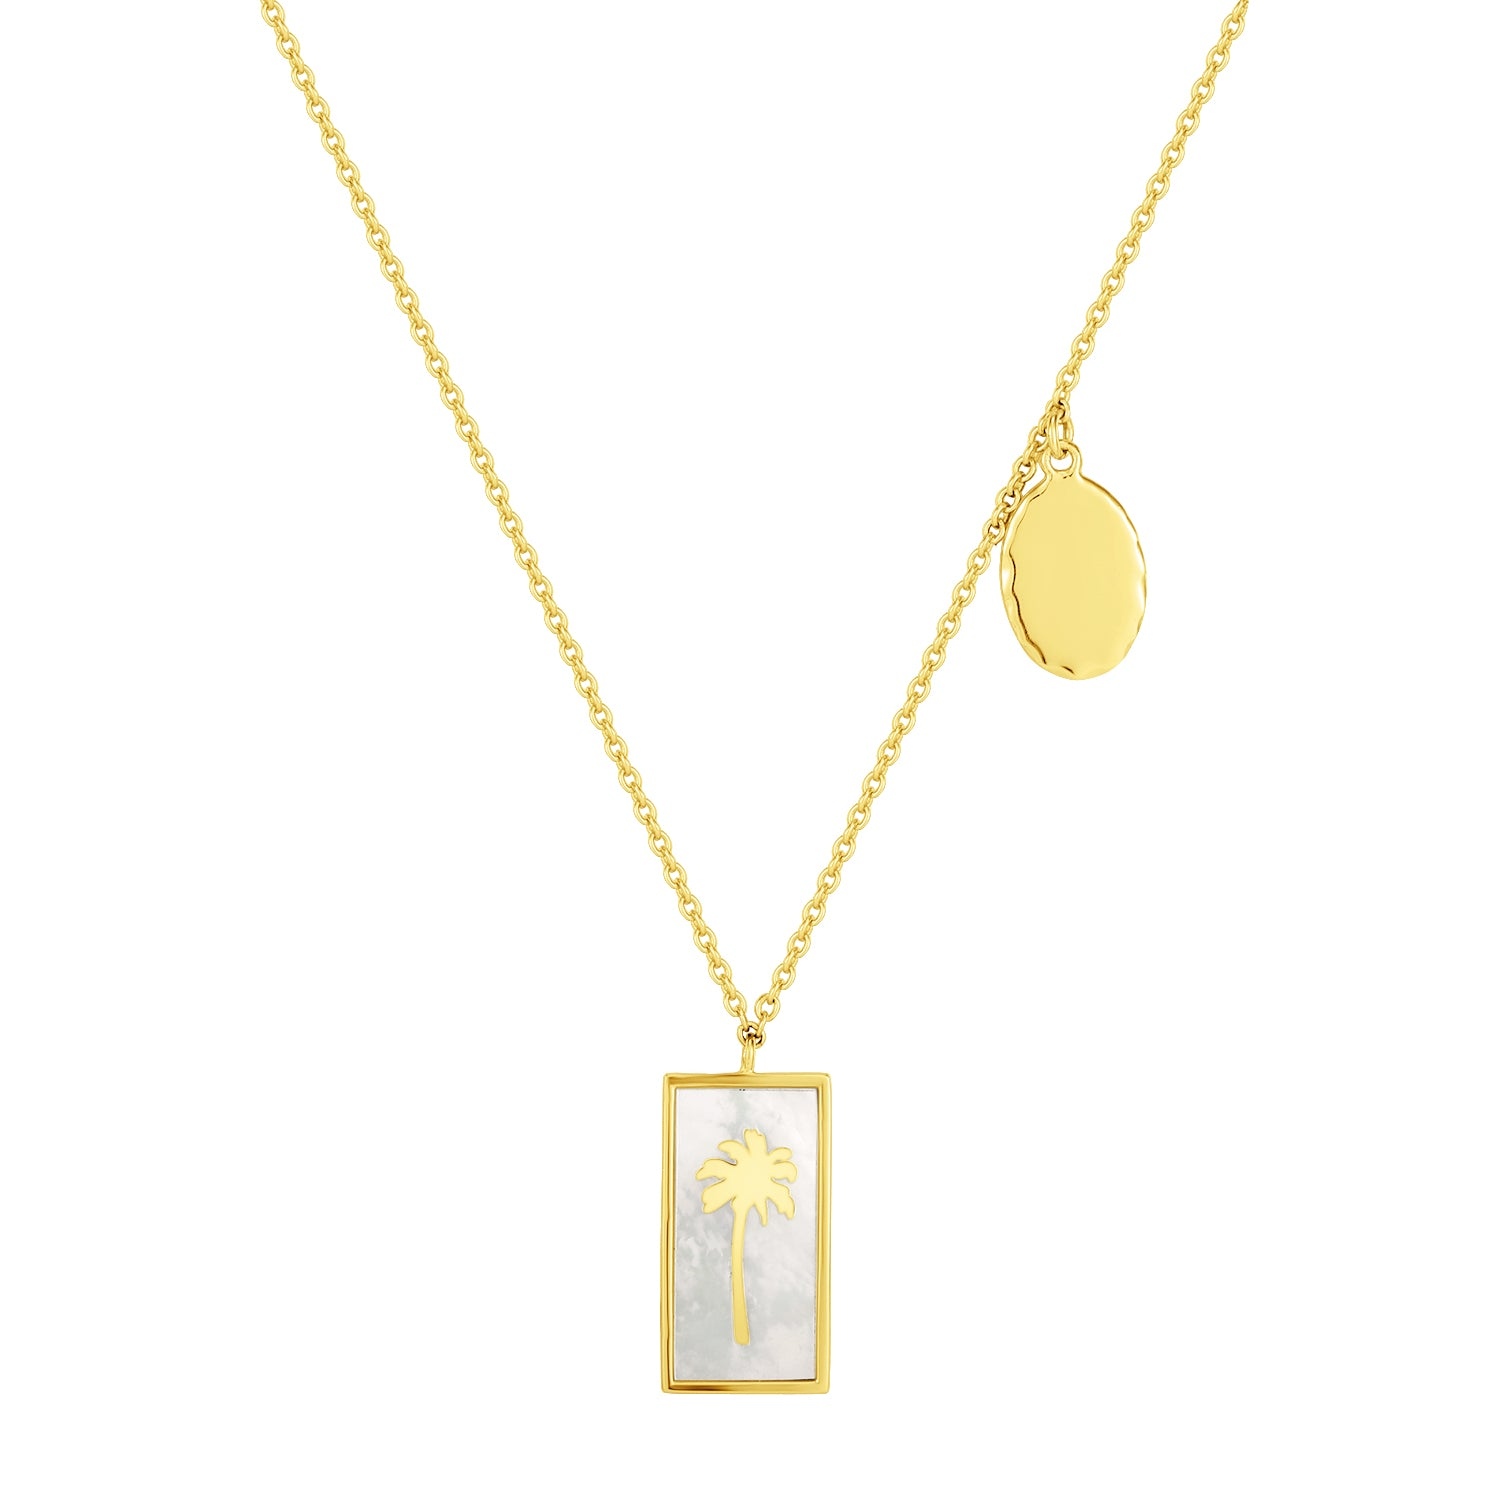 Spirito Rosa X Queen Dina Summer | Sunny Necklace | 925 Silver | Mother of Pearl | 14K Gold Plated